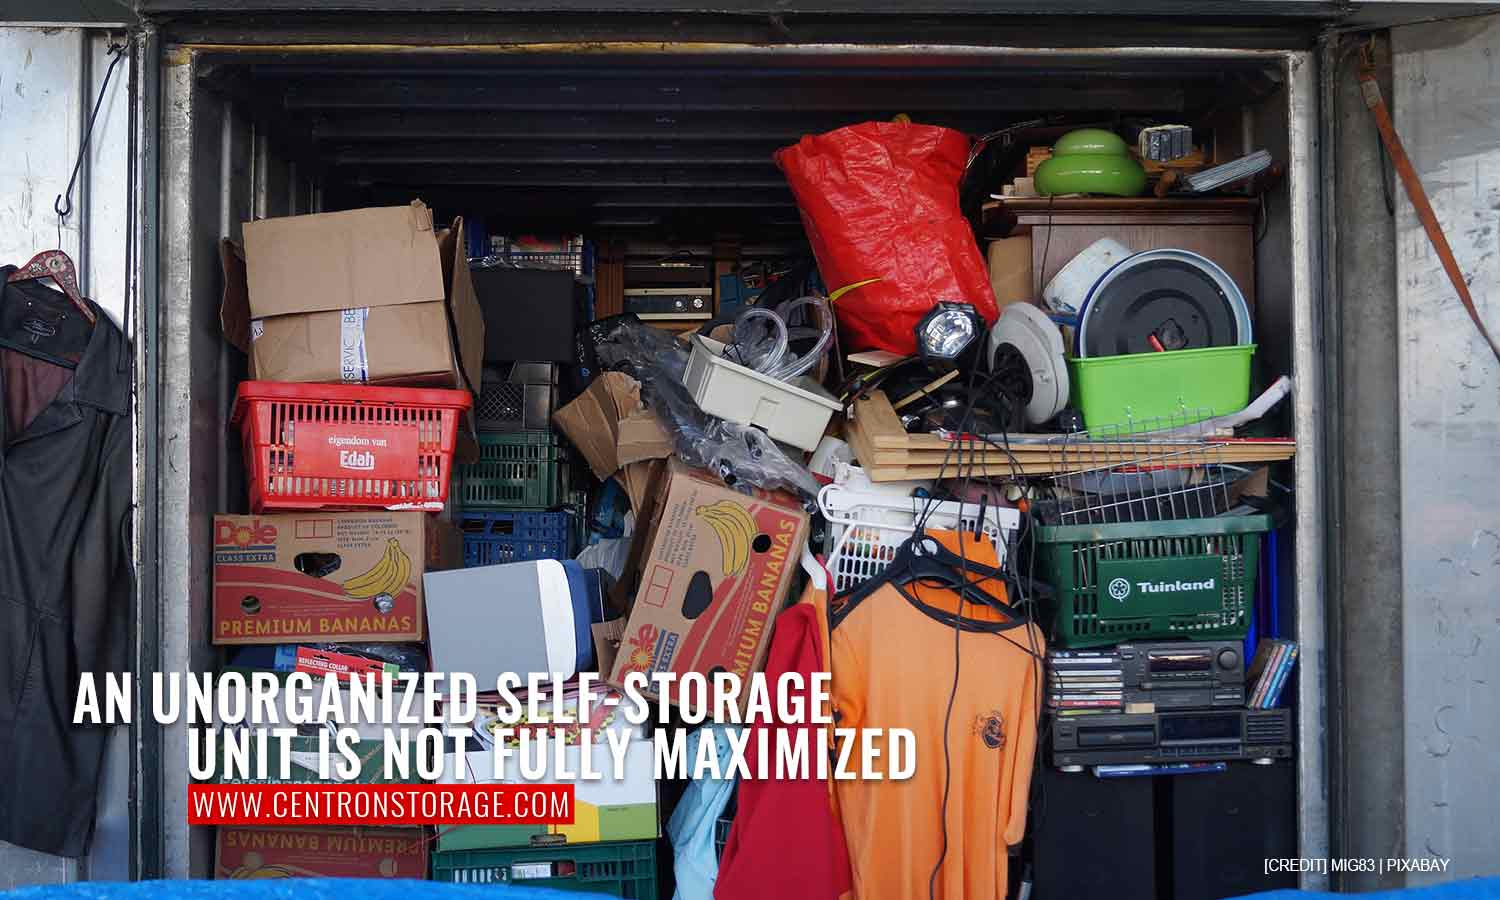 An unorganized self-storage unit is not fully maximized